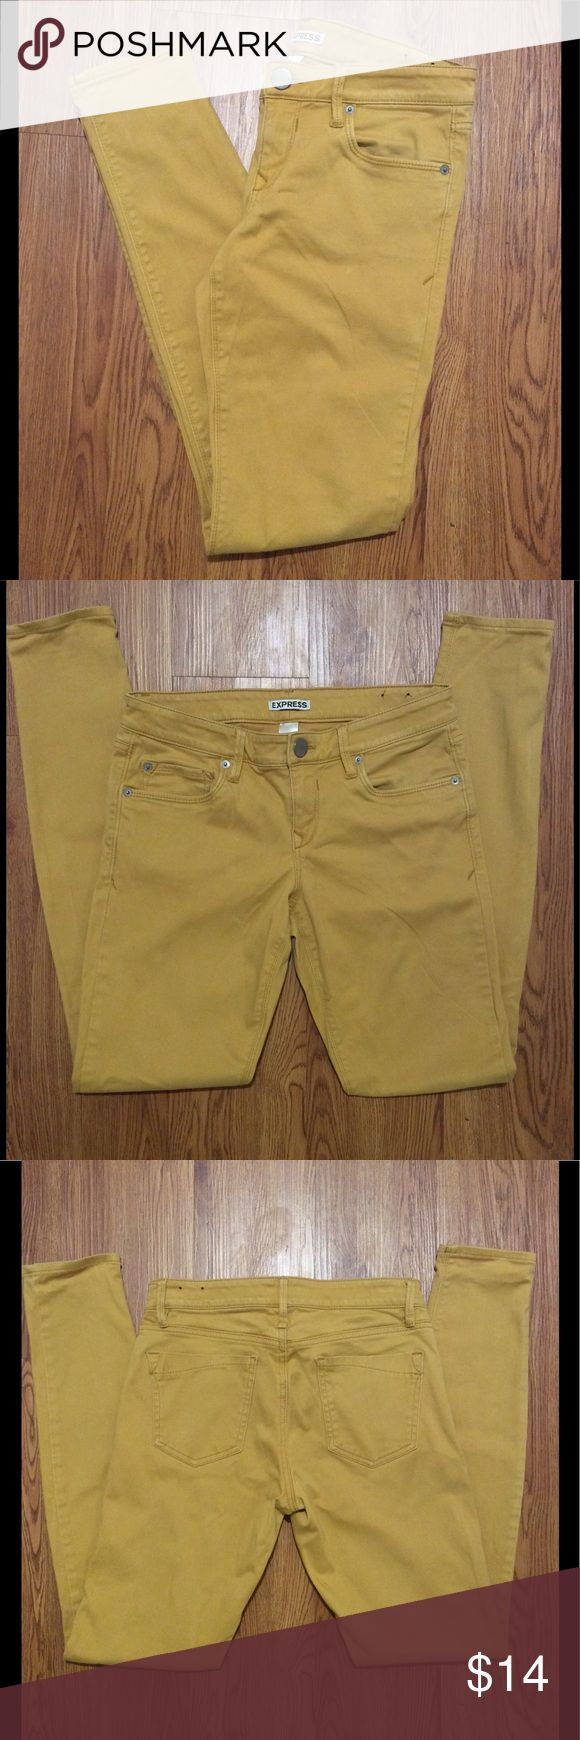 Mustard Yellow  Skinny Jeans Express, size 4, good stretch. Lightly used, good condition Express Jeans Skinny